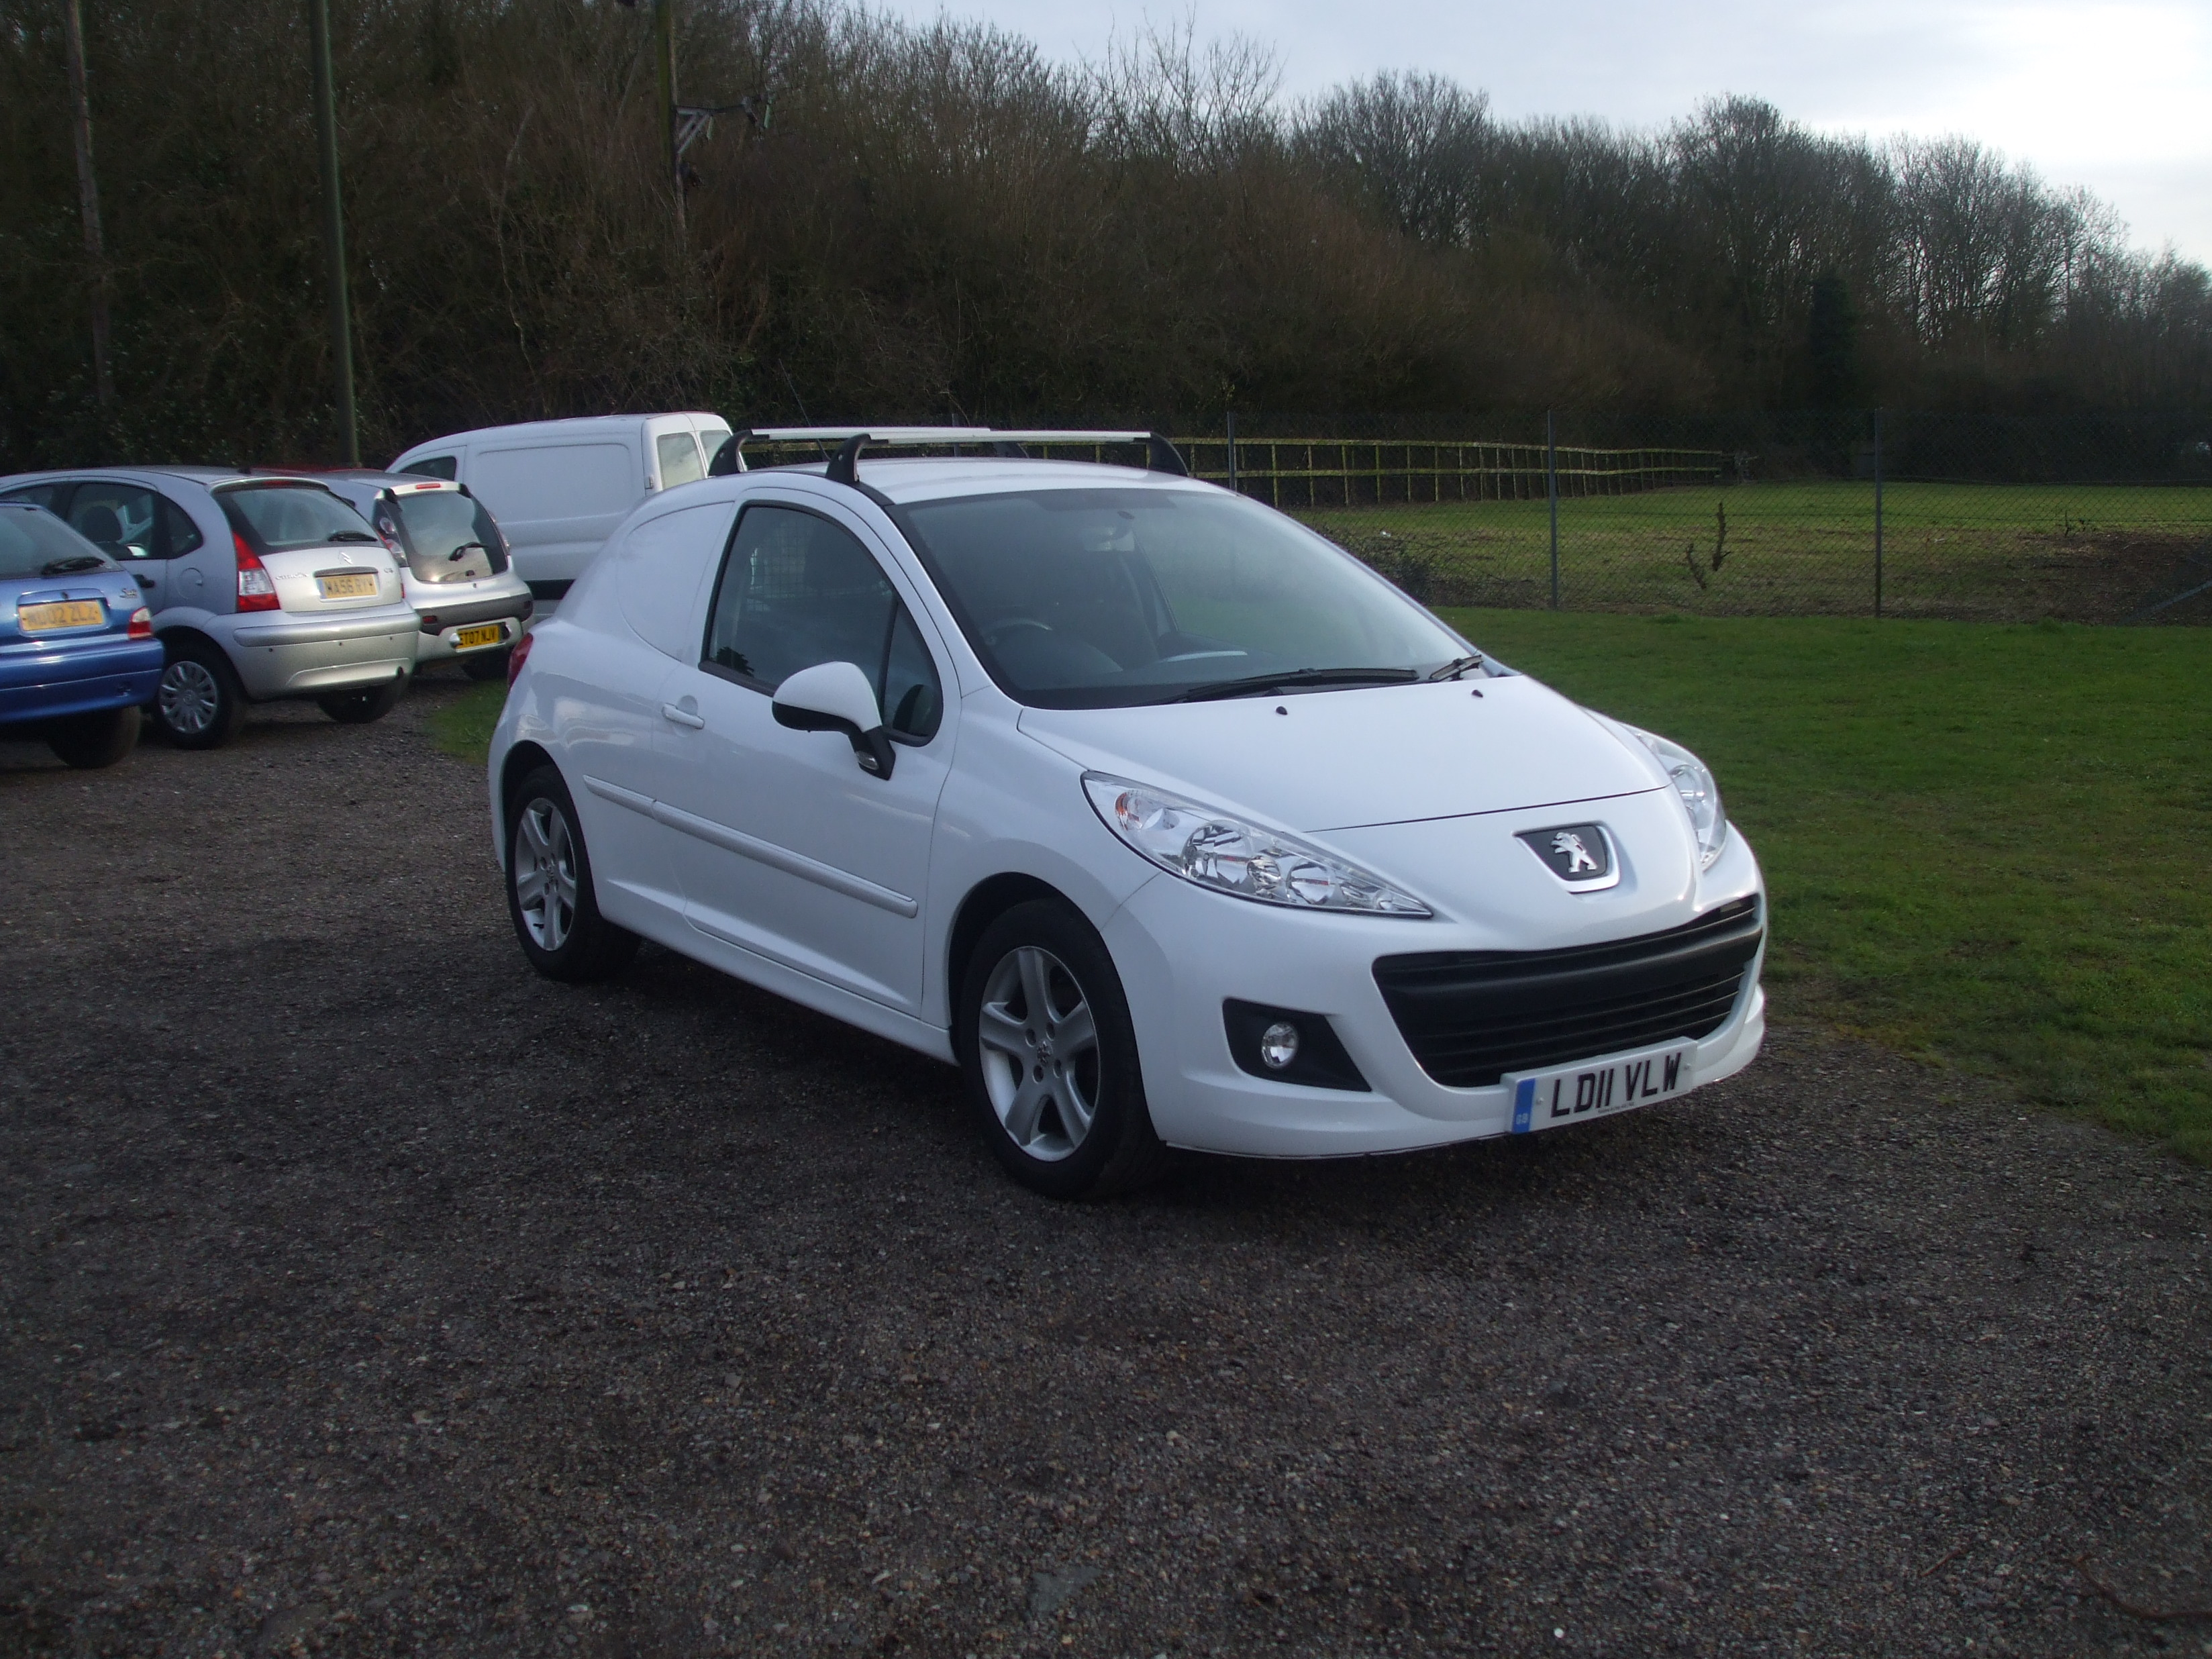 peugeot 207 1 4 hdi panel van 11 reg sold ymark. Black Bedroom Furniture Sets. Home Design Ideas